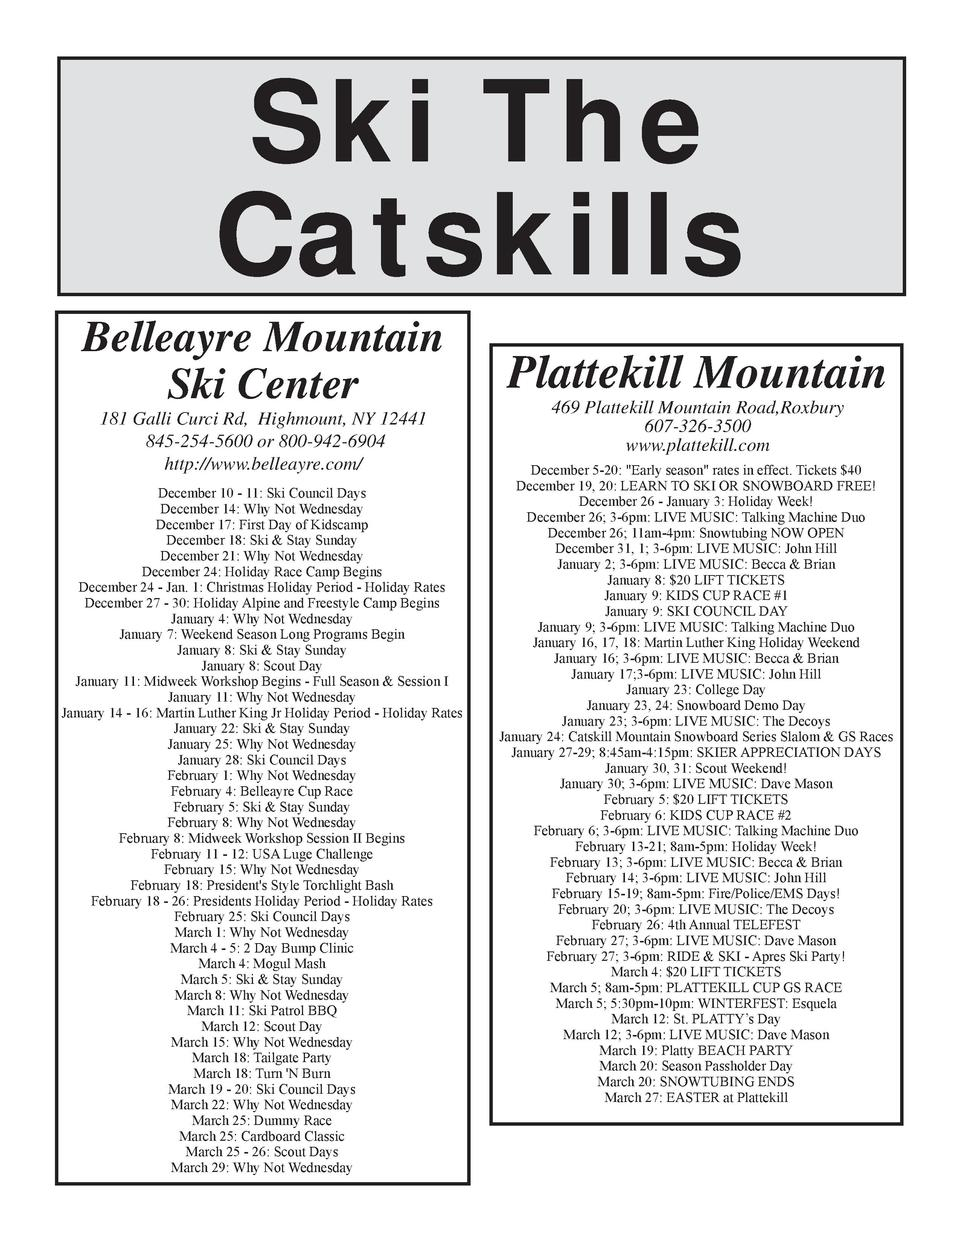 Ski The Catskills Belleayre Mountain Ski Center 181 Galli Curci Rd, Highmount, NY 12441 845-254-5600 or 800-942-6904 http ...